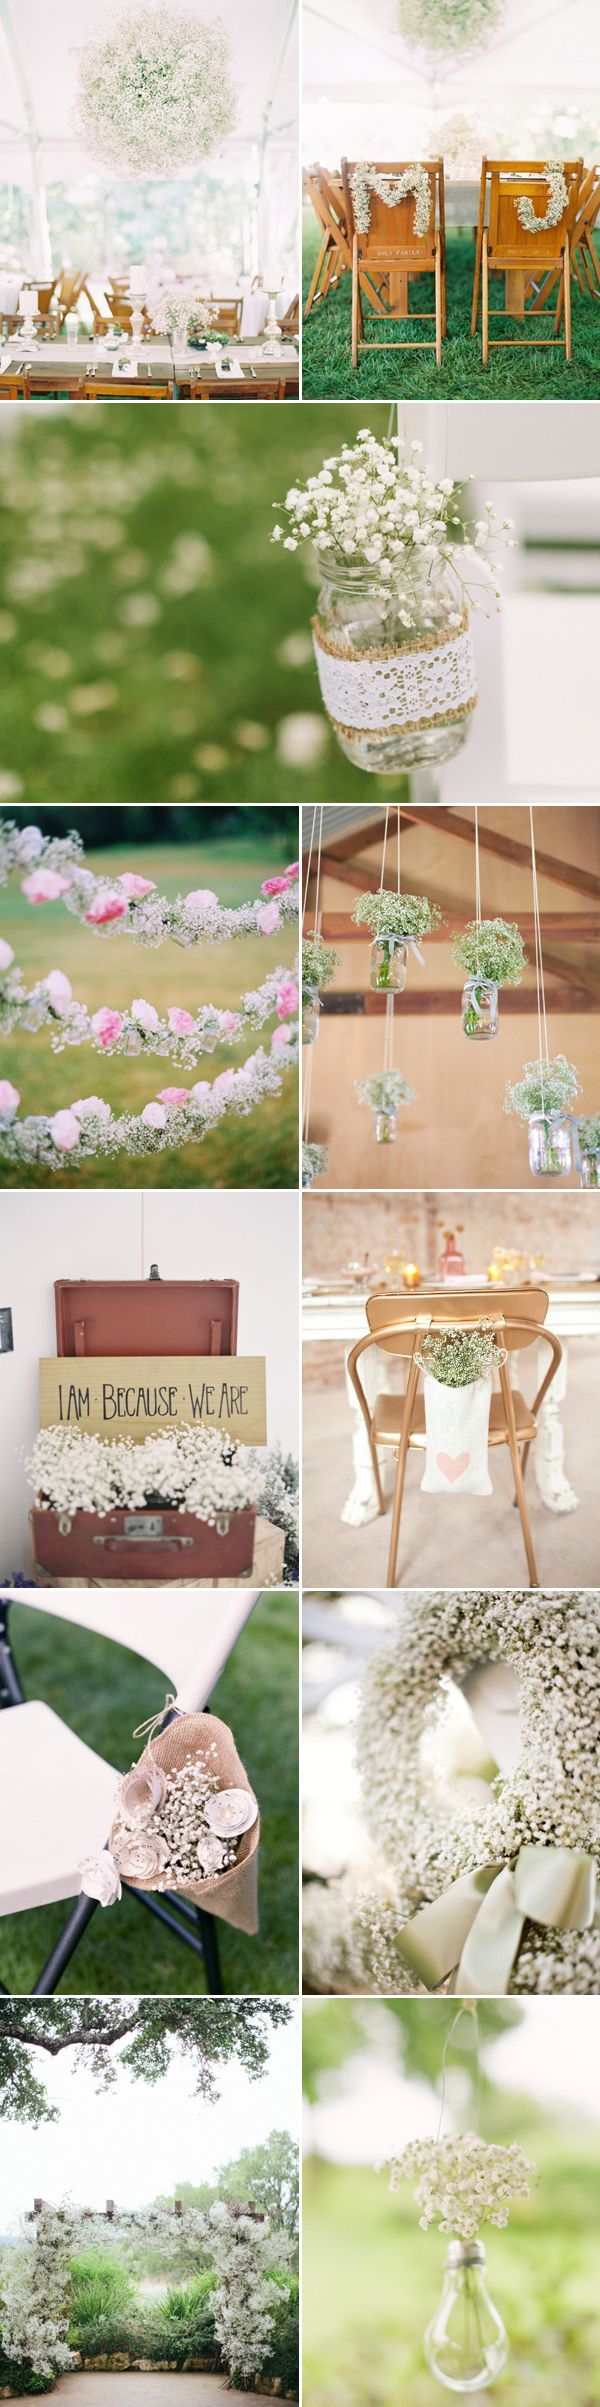 "Delicate, Airy, and dreamy, baby's breath (gypsophila) is no longer just a ""filler flower"", it's been popping up everywhere in weddings, from centerpieces to ceremony decoration, to bridal bouquets.  Baby's breath is budget-friendly, readily-available year-round, long-lasting, and it can be used to match any wedding theme, from a rustic backyard to an elegant ballroom. It …"